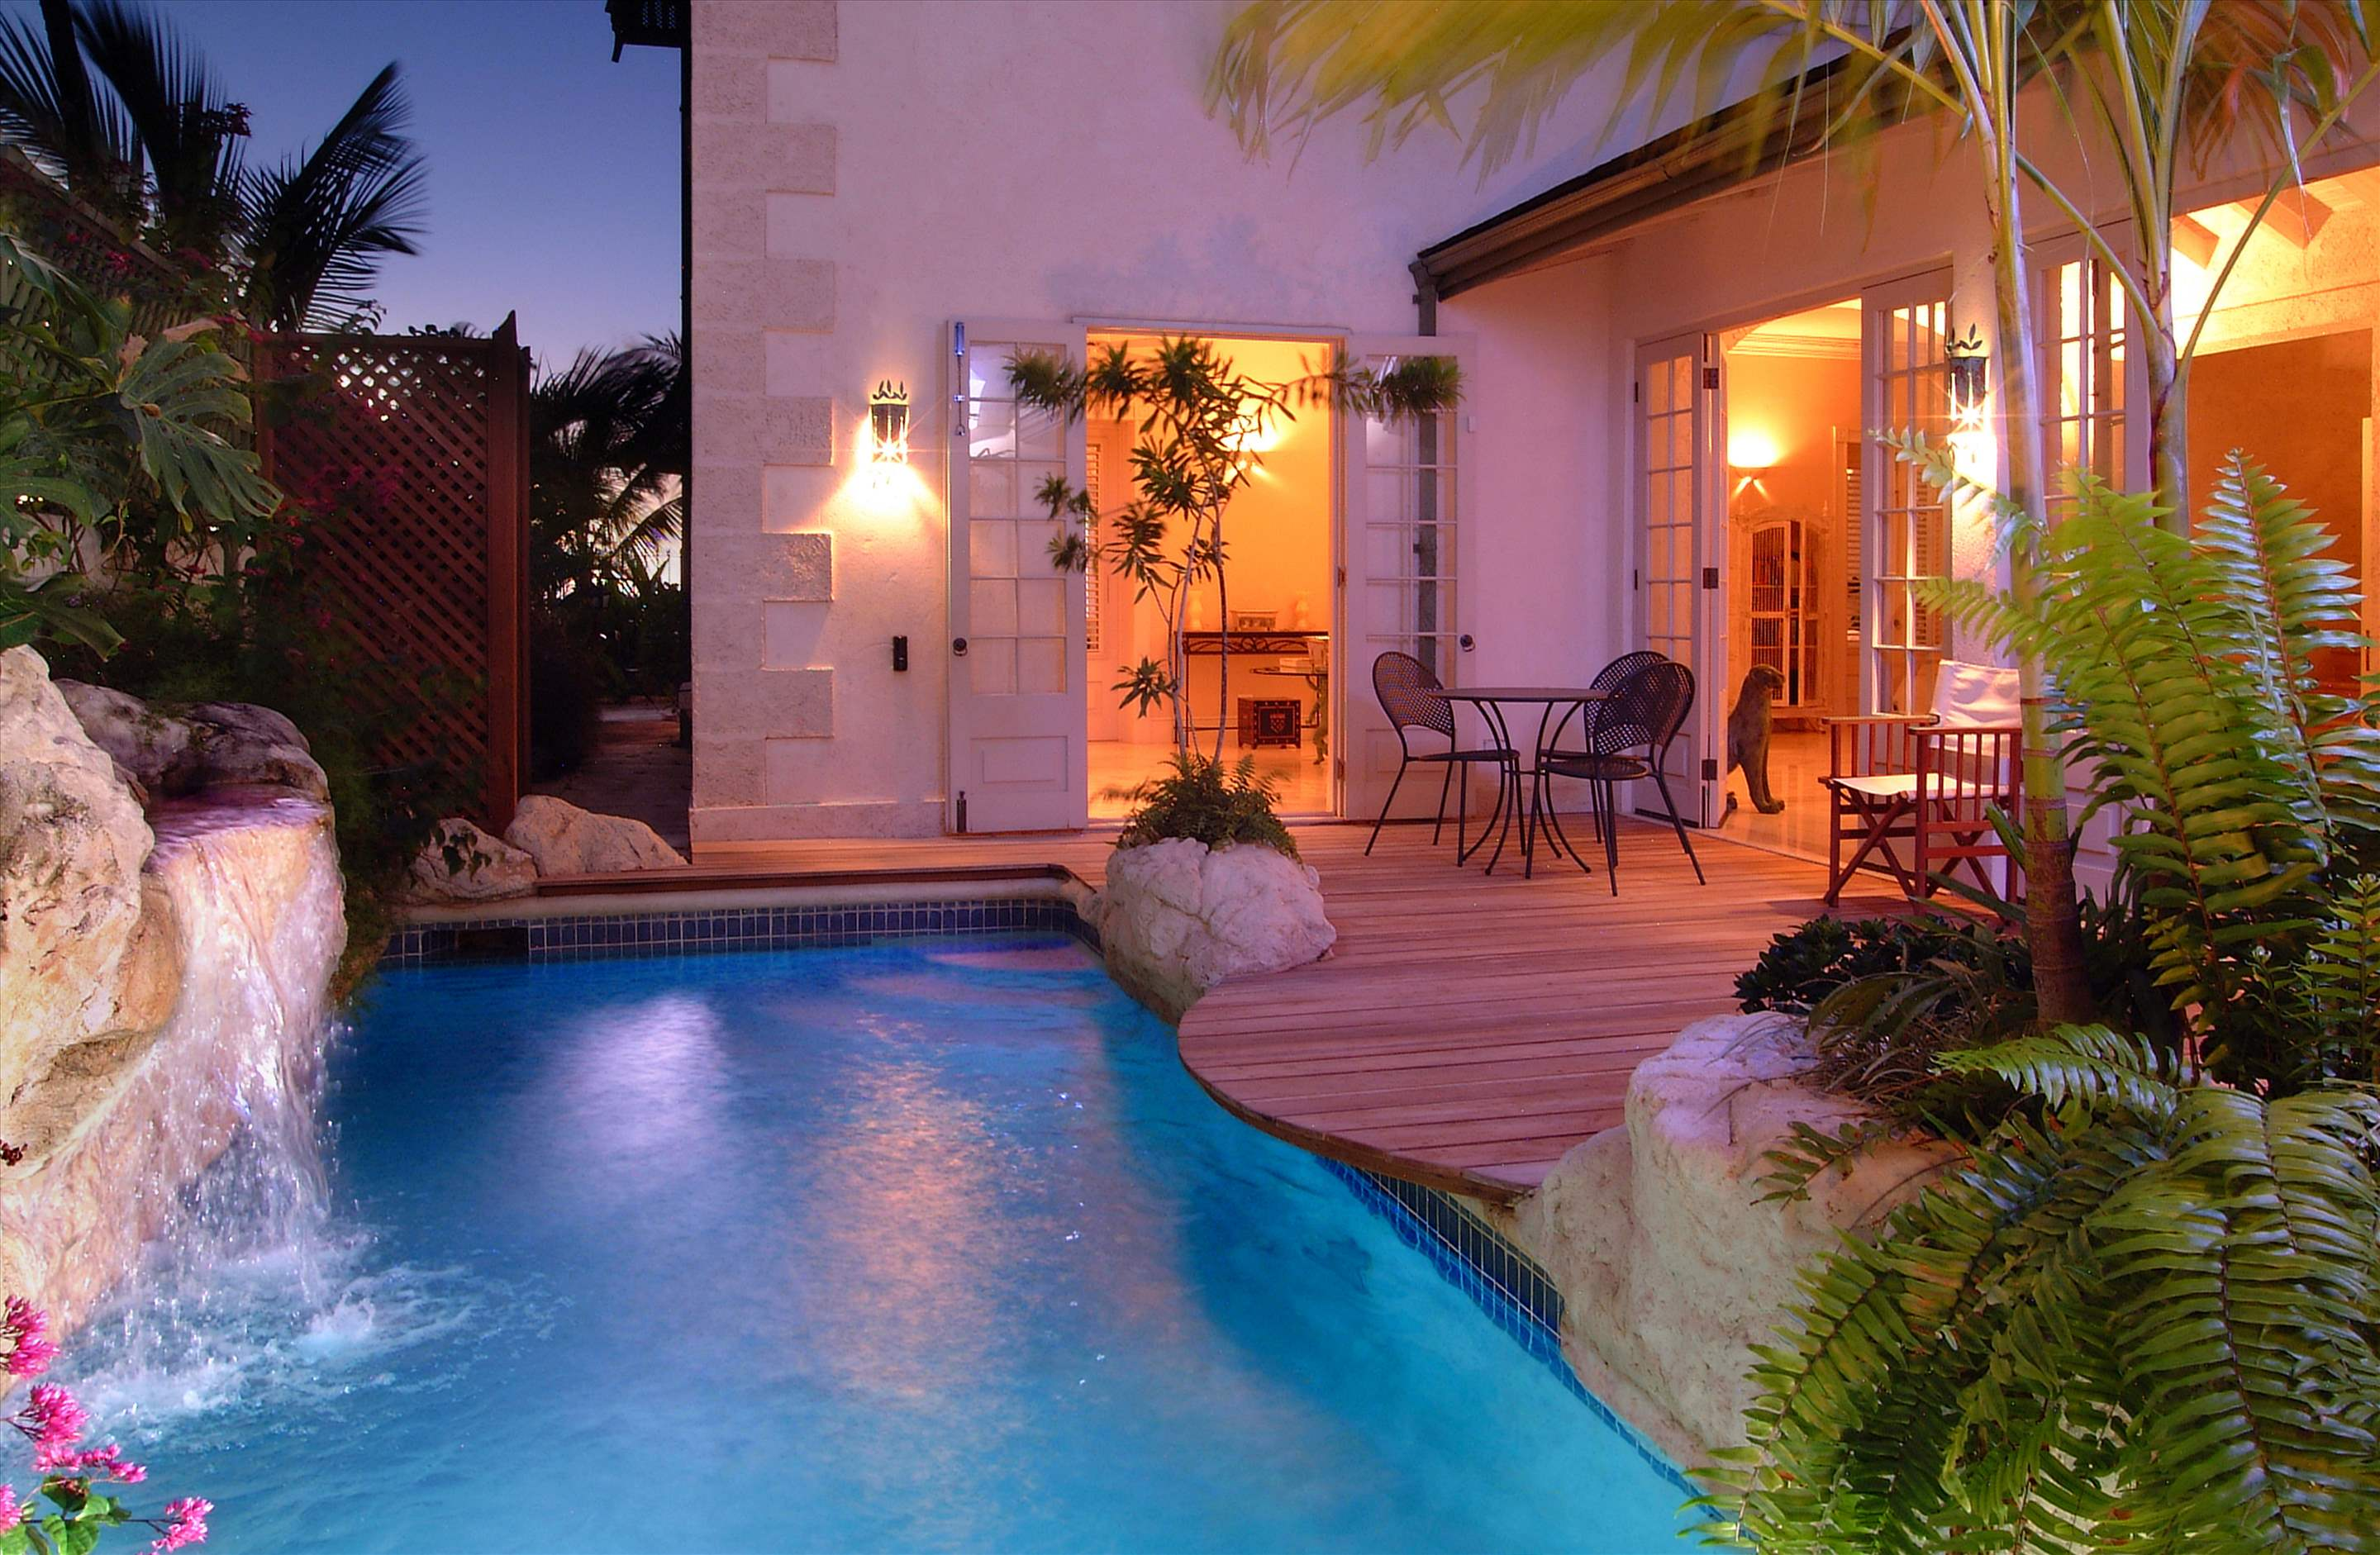 Caprice, 4 bedroom villa in St. James & West Coast, Barbados Photo #1